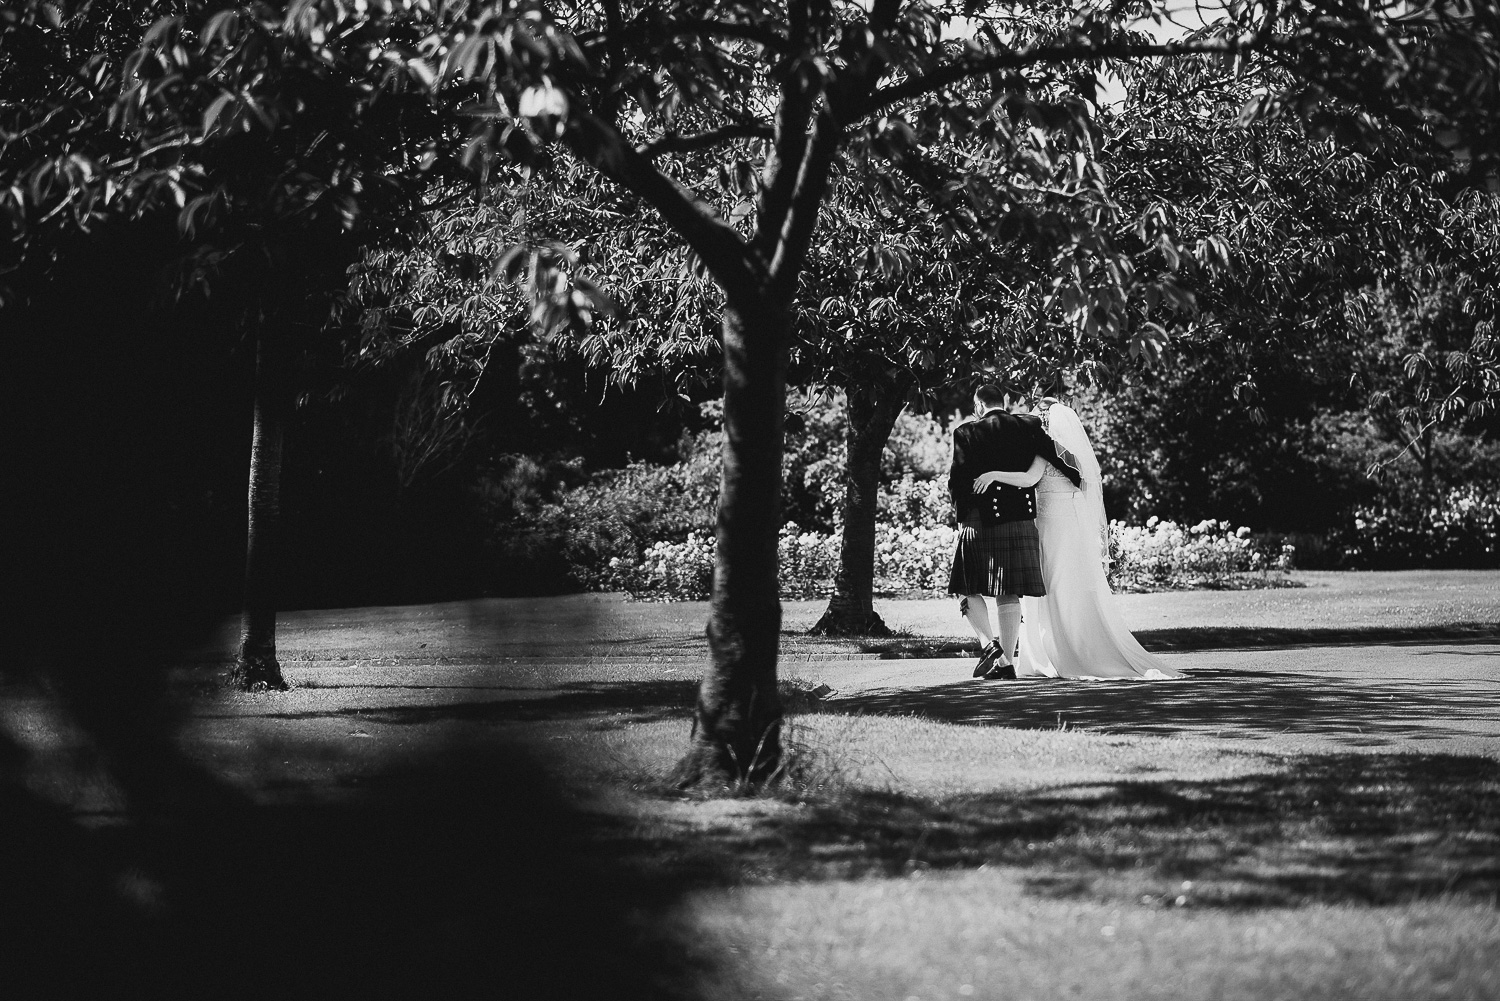 wedding-photographer-cardiff-university-19.jpg